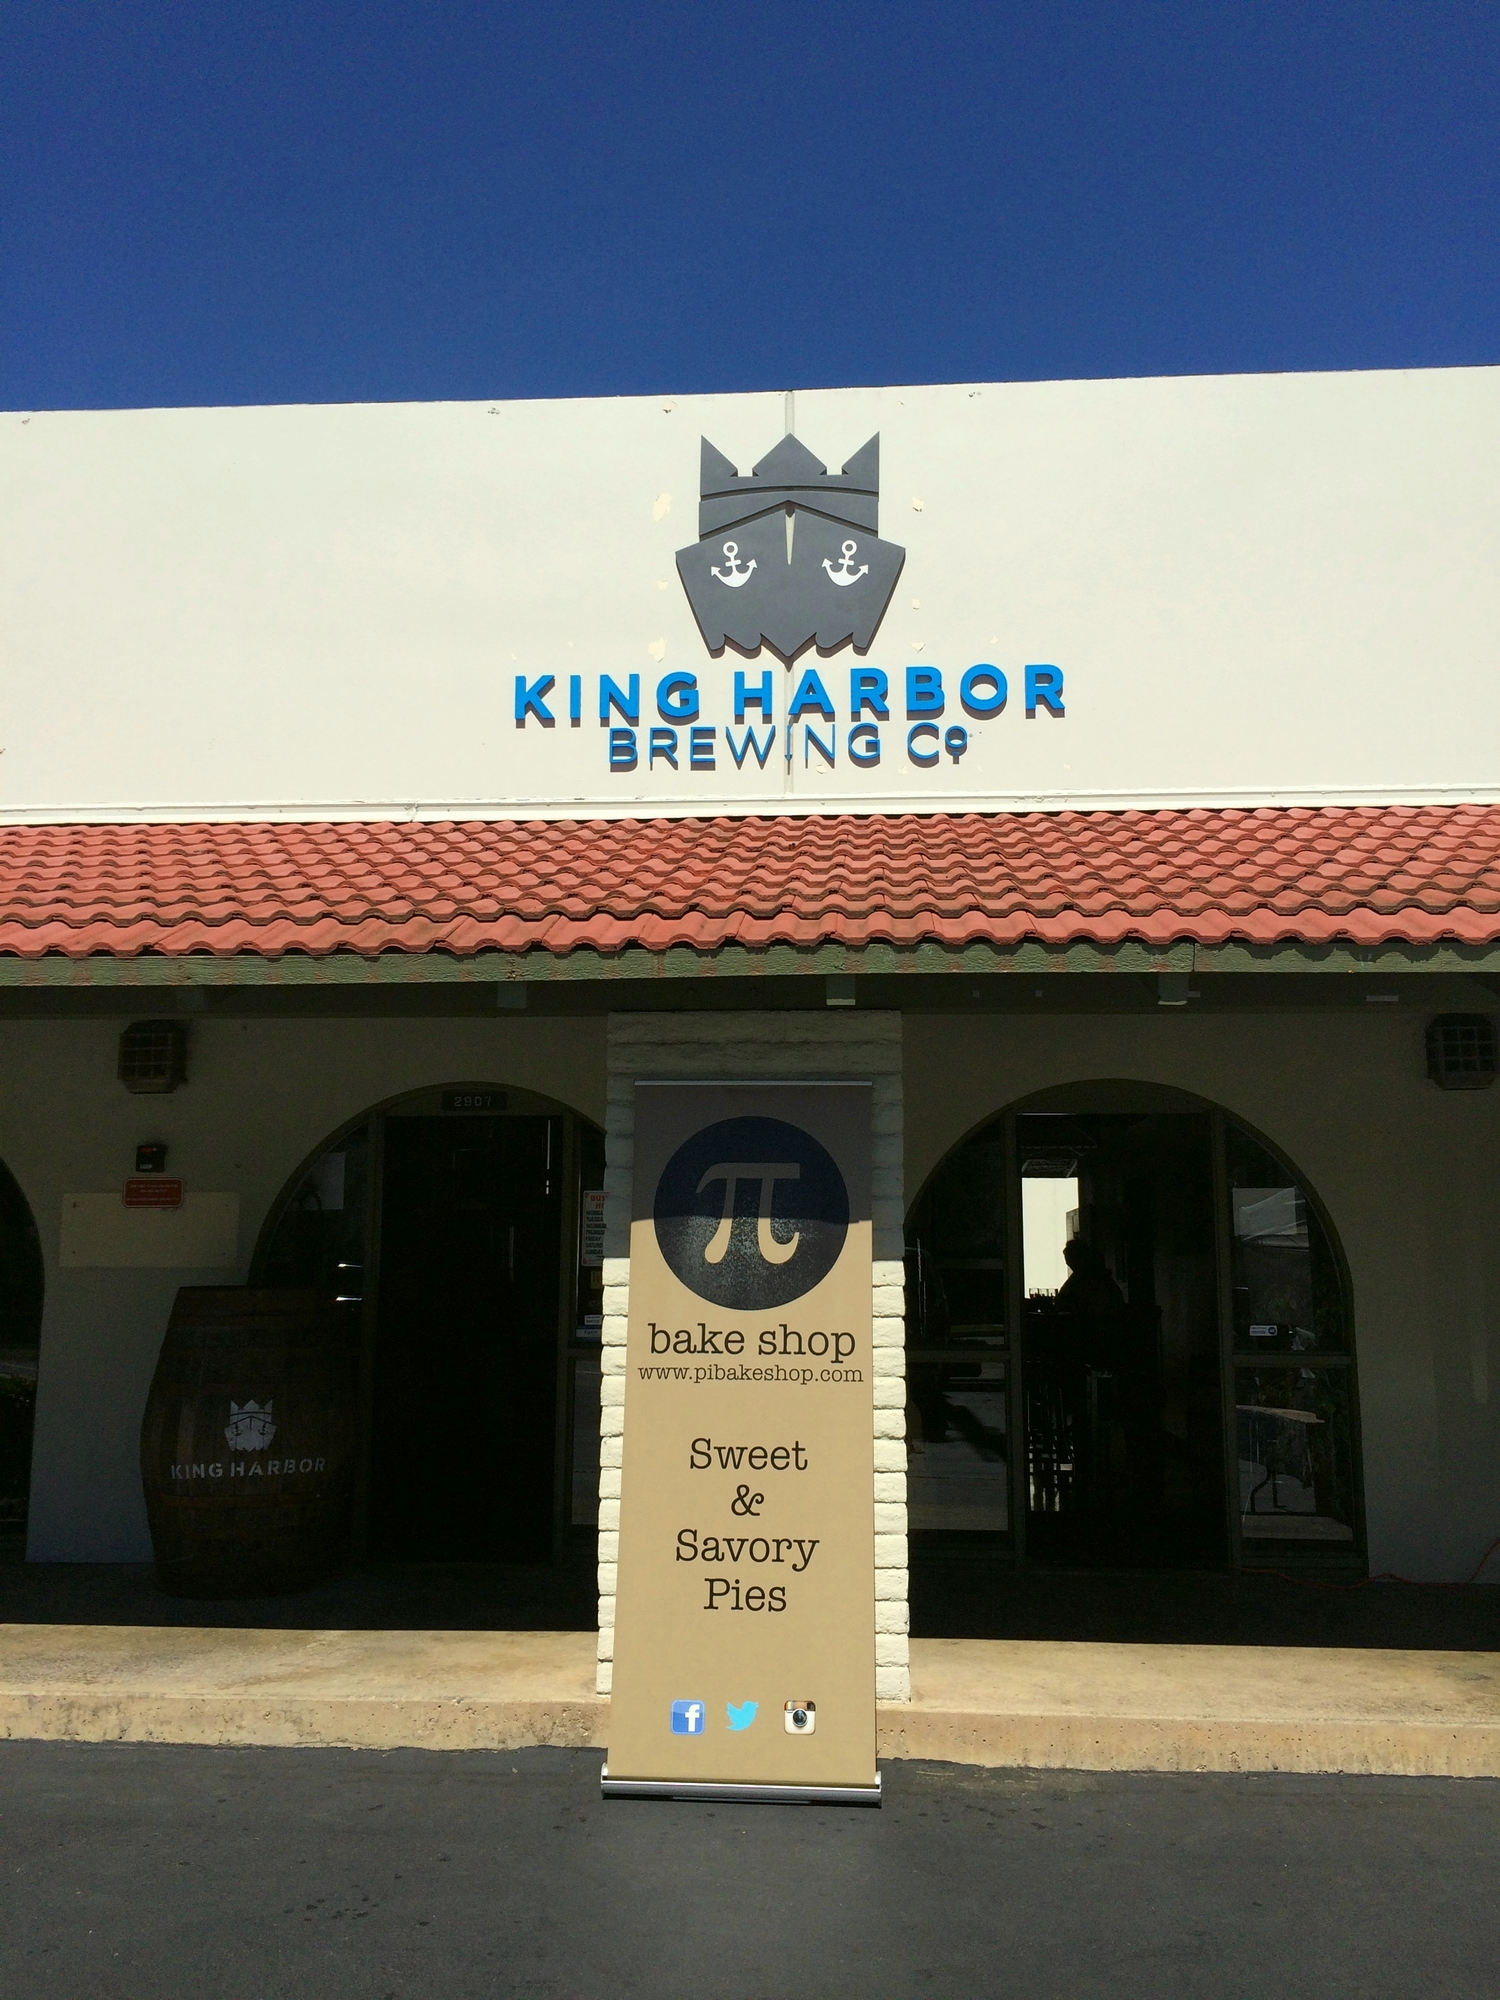 Welcome to King Harbor Brewing Co.